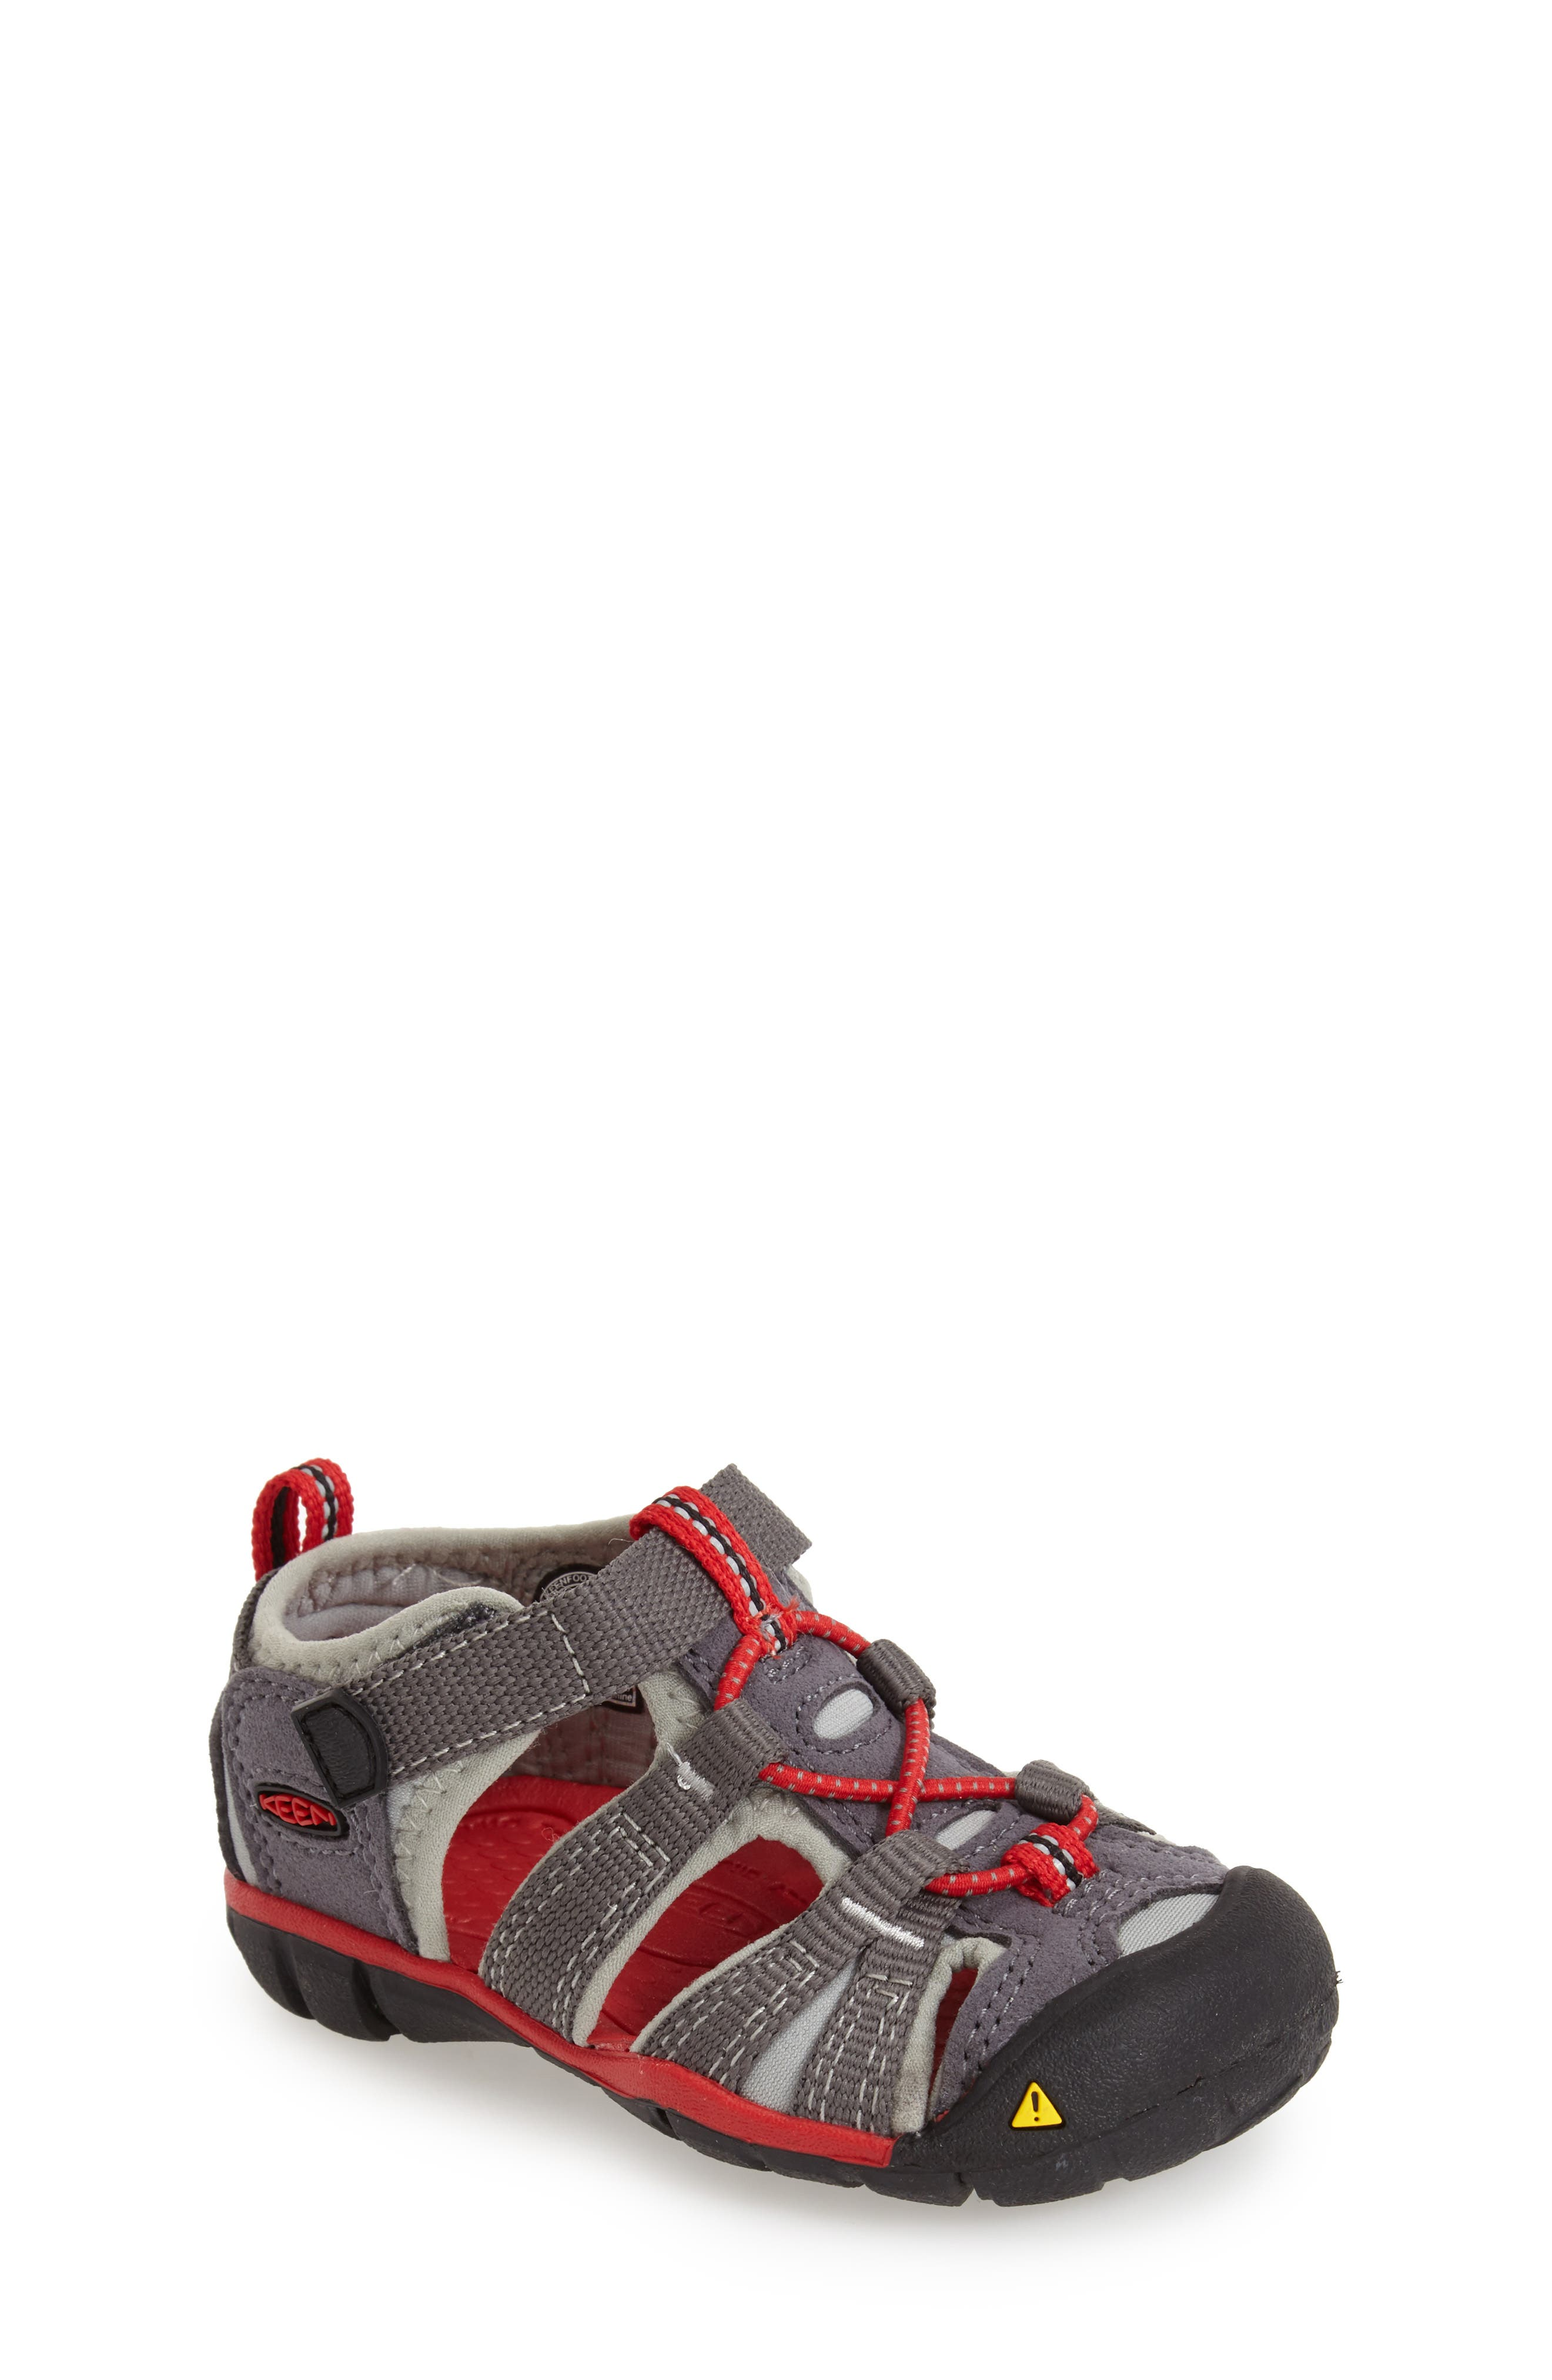 Seacamp II Water Friendly Sandal,                         Main,                         color, Magnet/ Racing Red